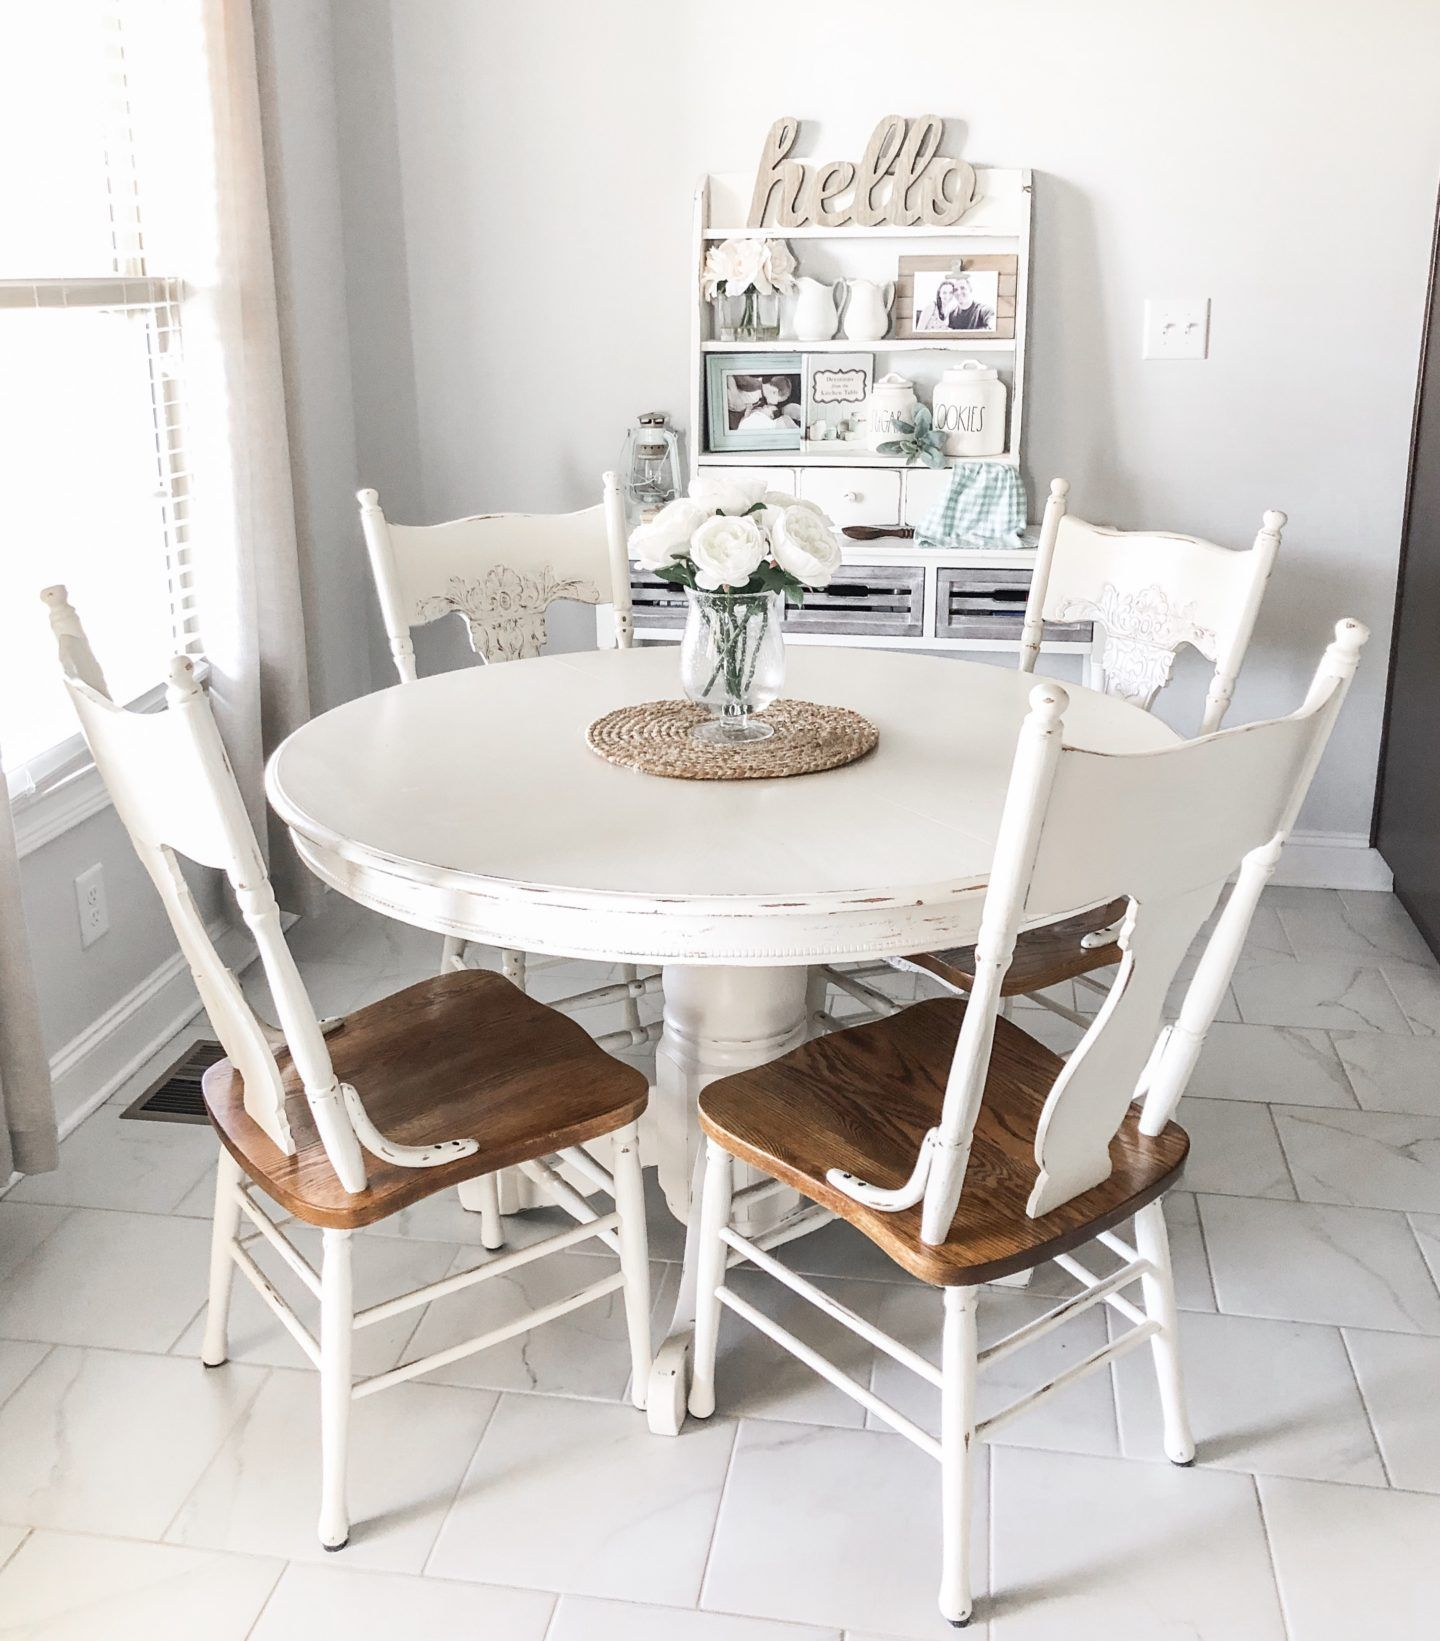 How To Paint And Distress Furniture Using Chalk Paint With Images